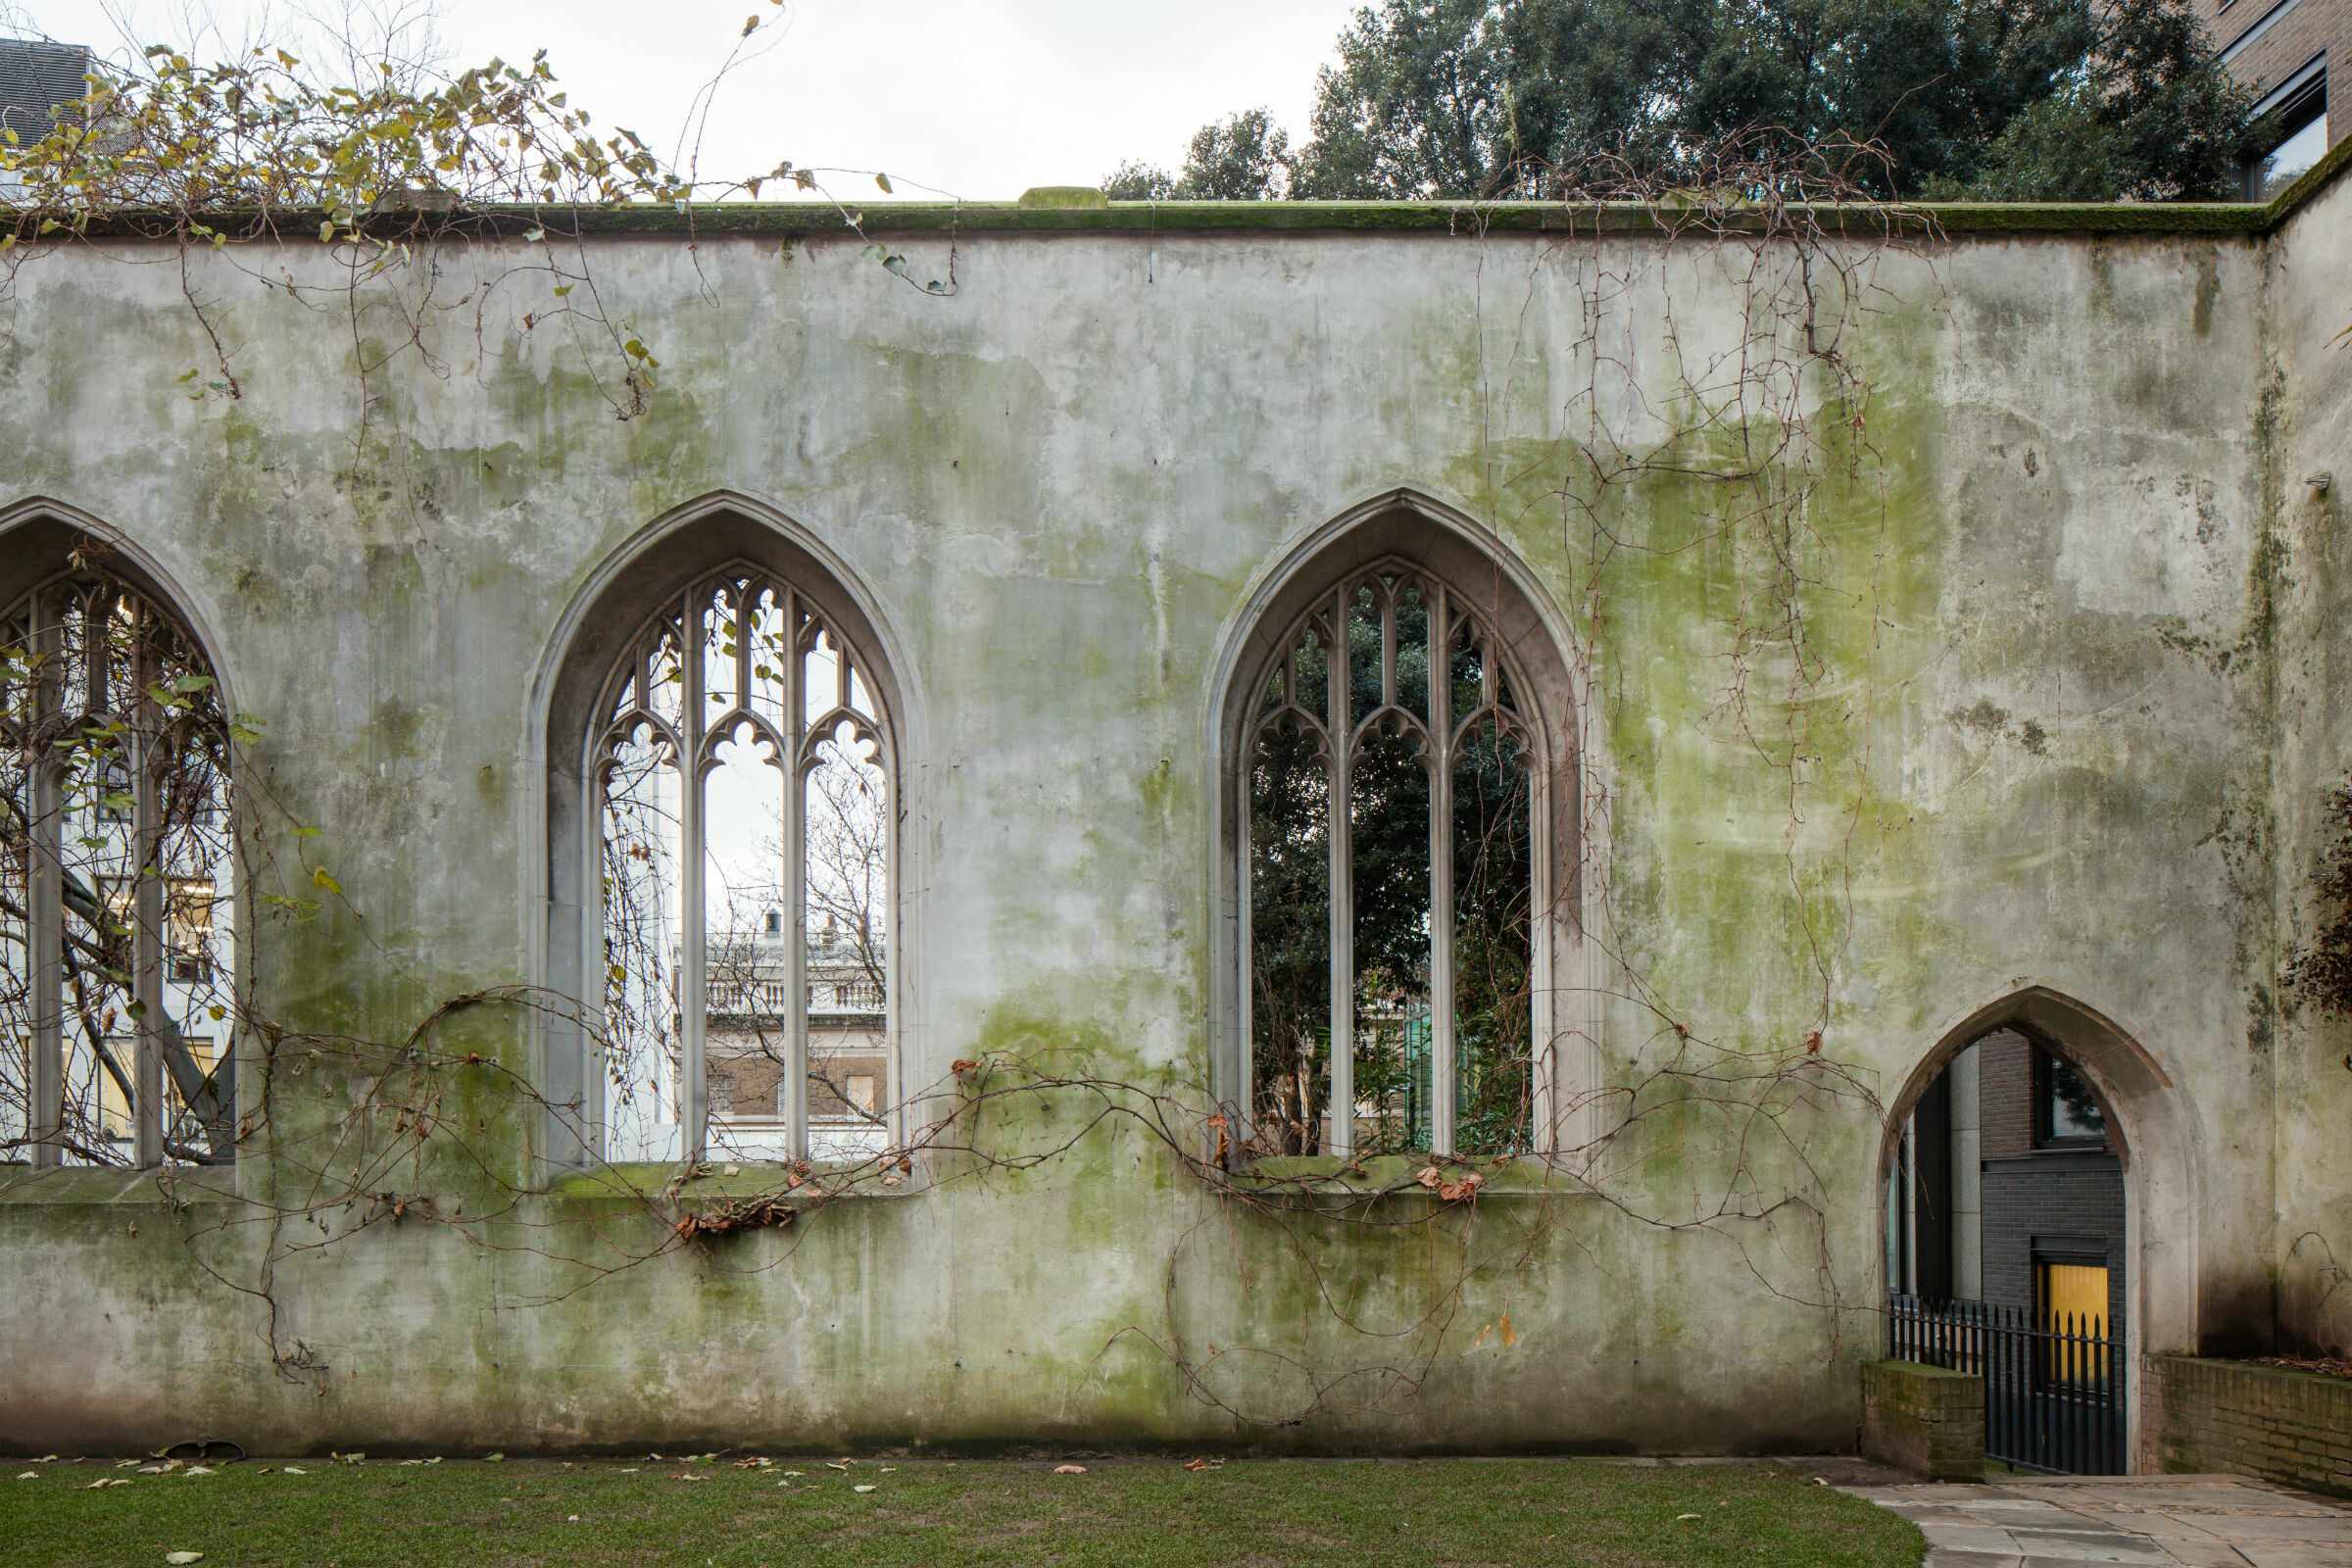 Moss covered masonry walls of St Dunstan's church